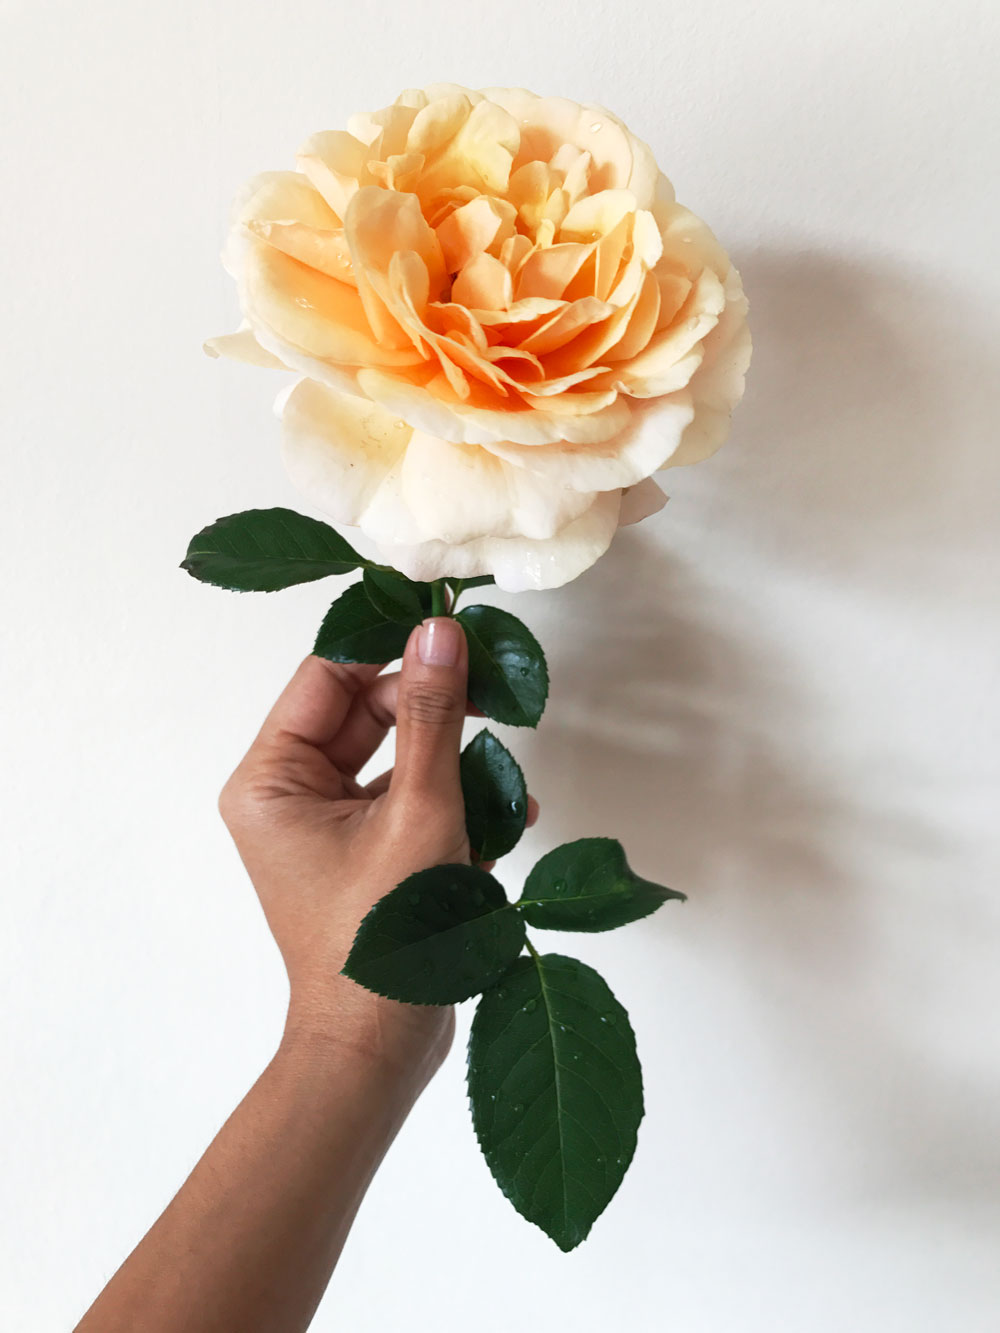 Simple Peach (Harkness Roses) from my balcony garden. Photo © Zarina Holmes